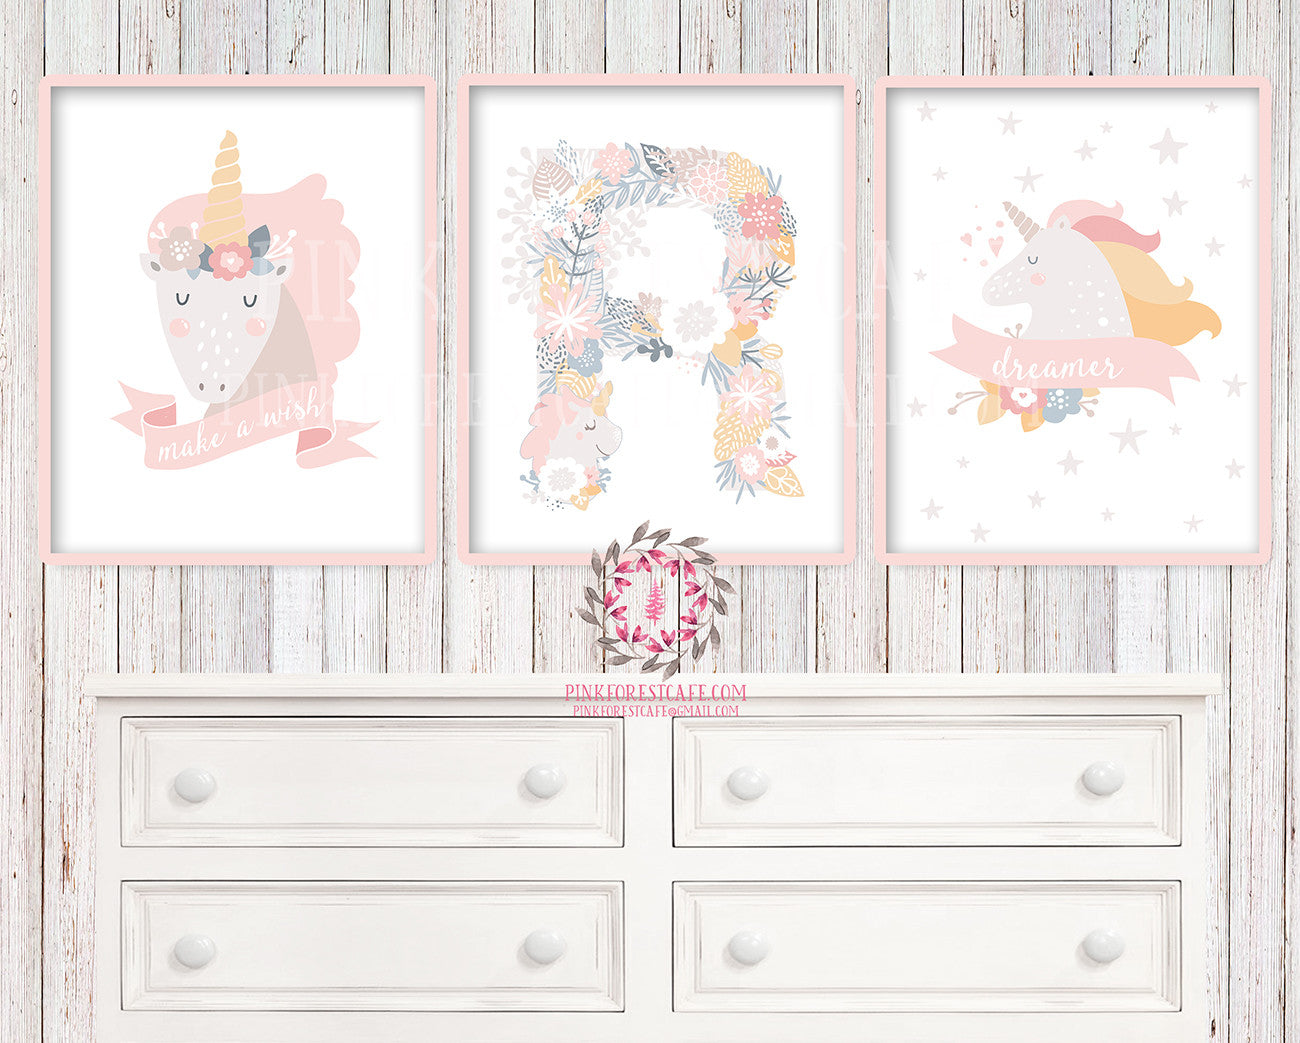 Sleeping Unicorn Set 3 Baby Girl Boho Scandinavian Room Printable Wall Art Monogram Initial Prints Poster Nursery Decor